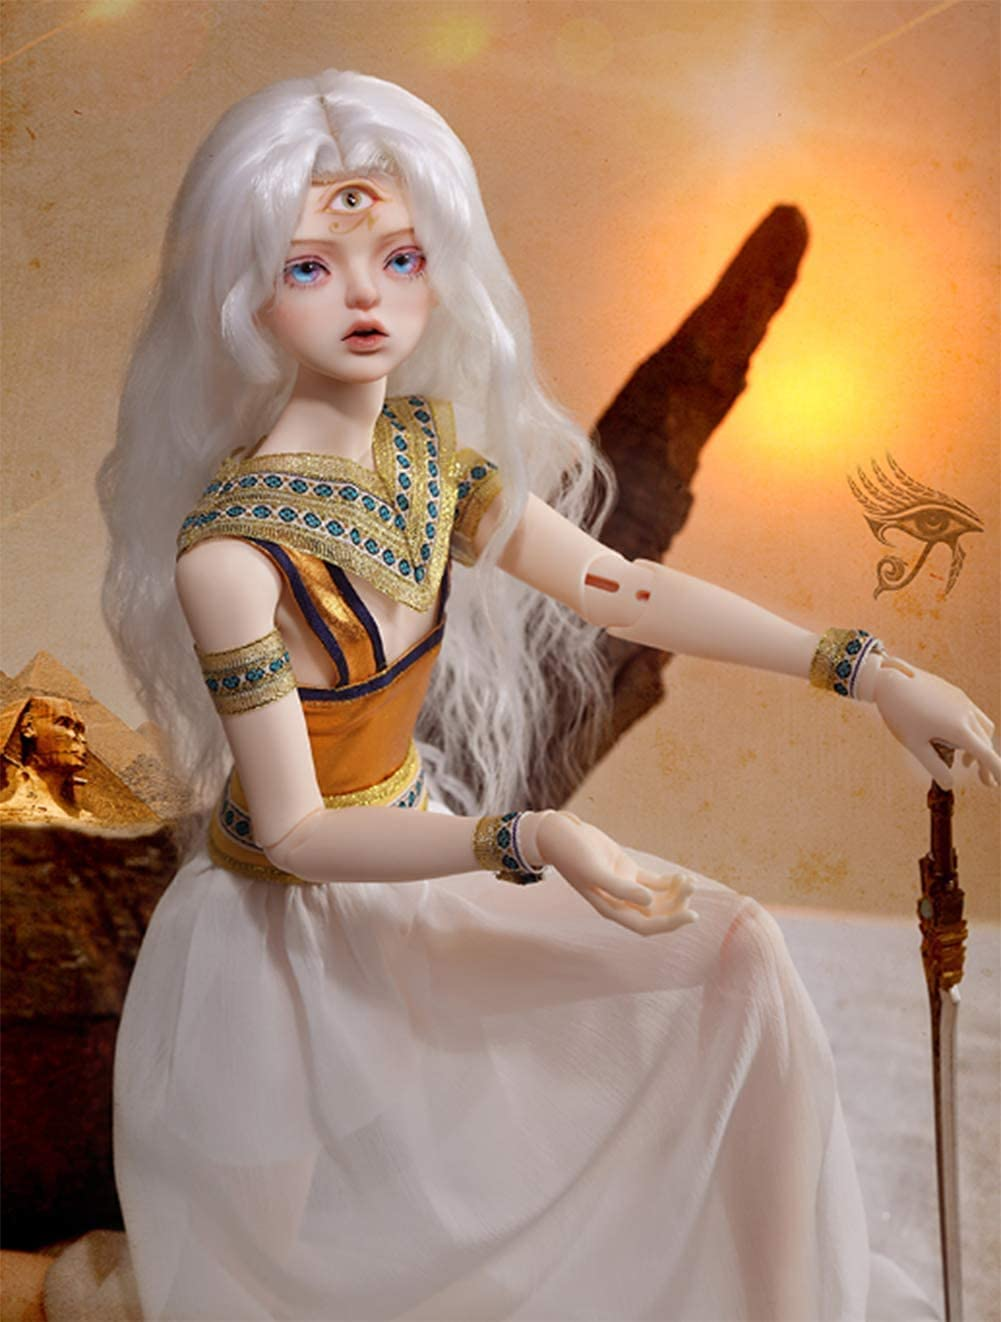 NIHE BJD Doll 1 4 SD Dolls Toys Jointed C Max 87% OFF Ball 16 DIY New York Mall Inch